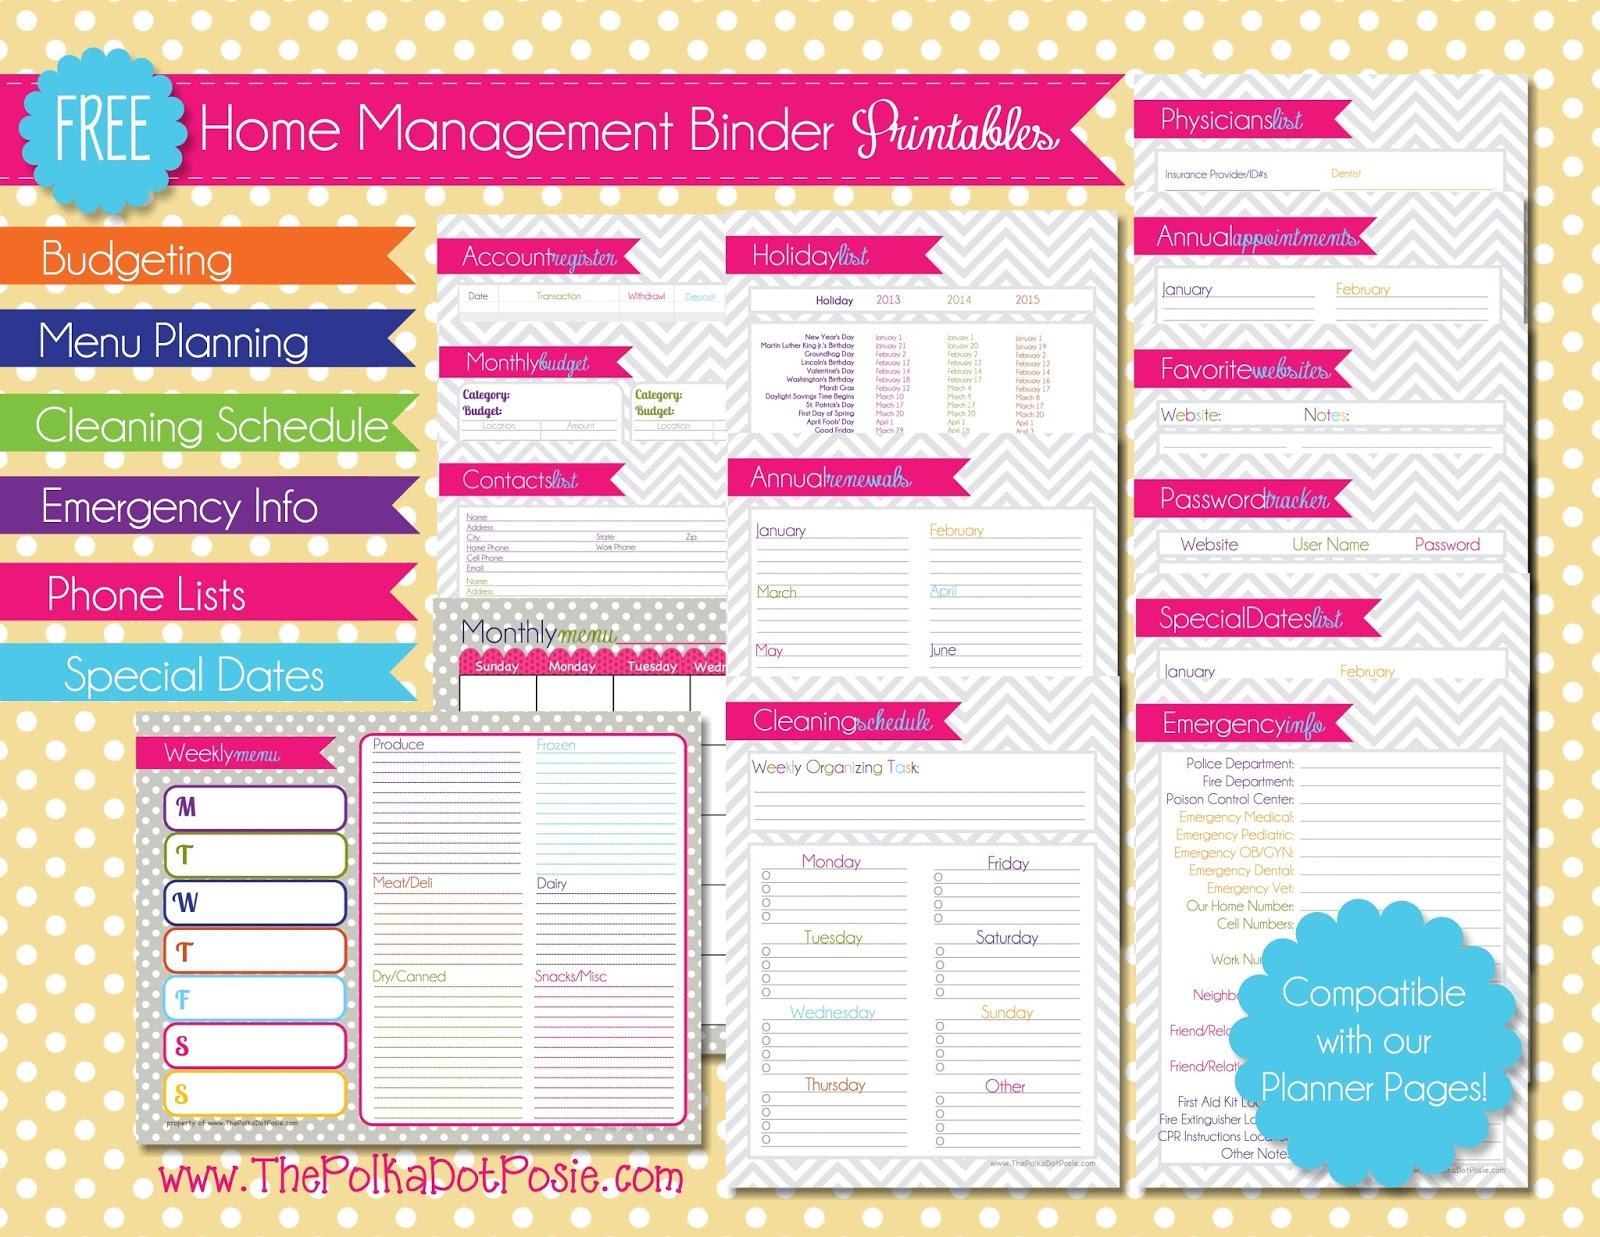 Free Printables For Home Management Binder